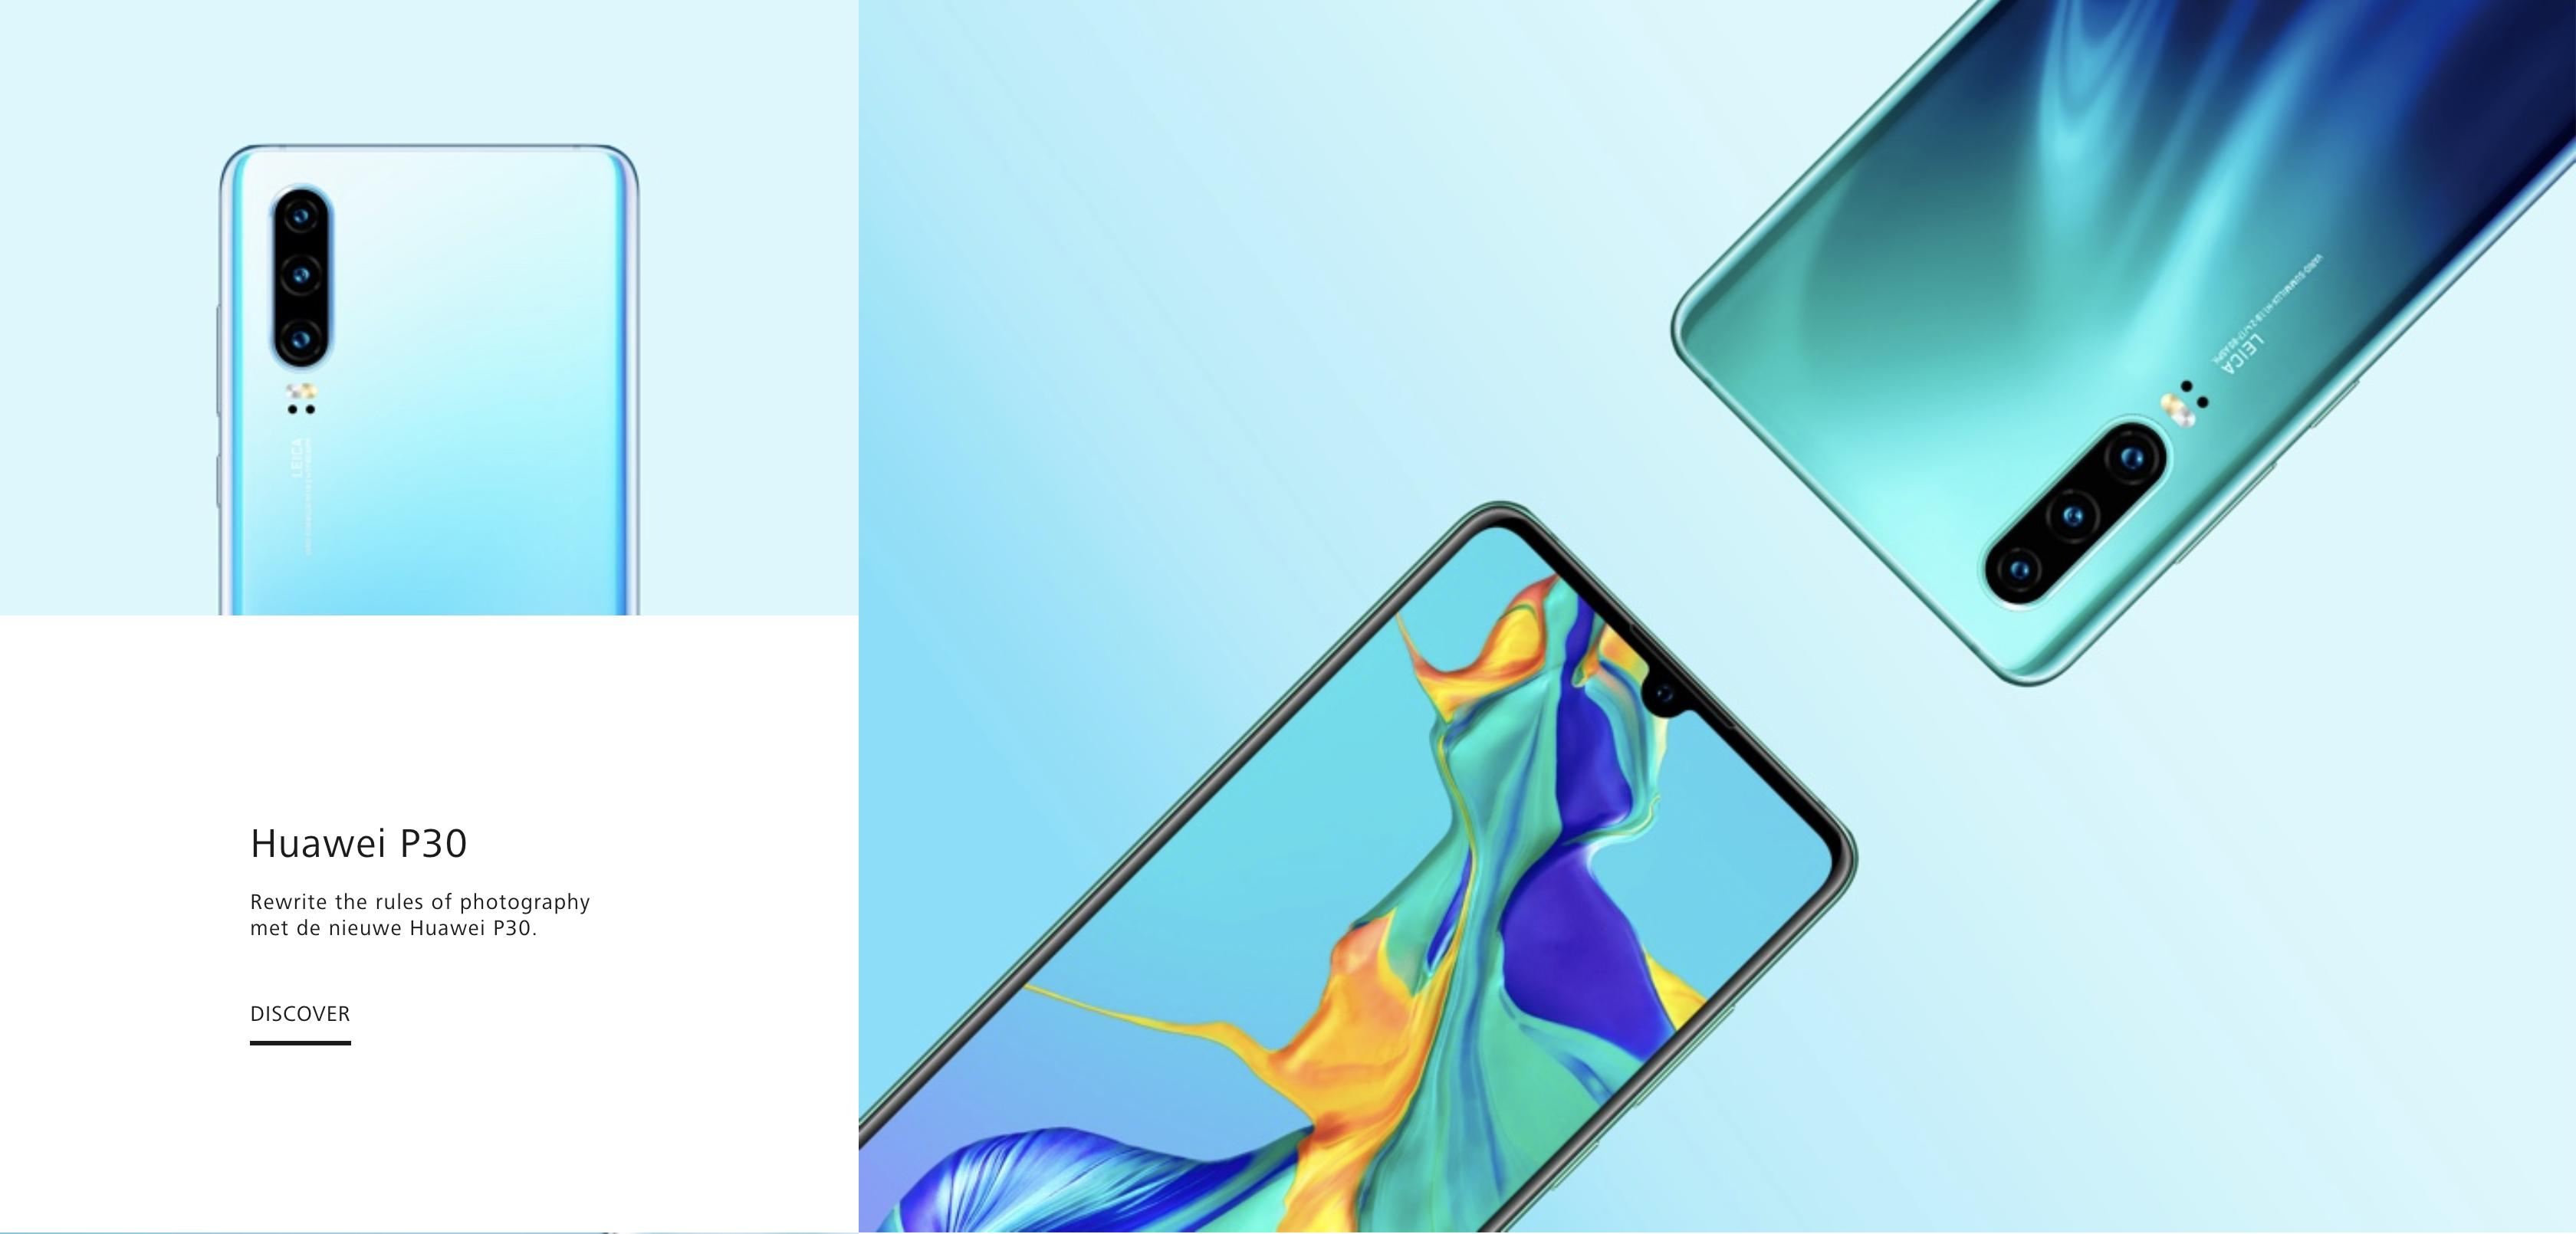 Huawei P30 & P30 Pro launched - Here's all you need to know